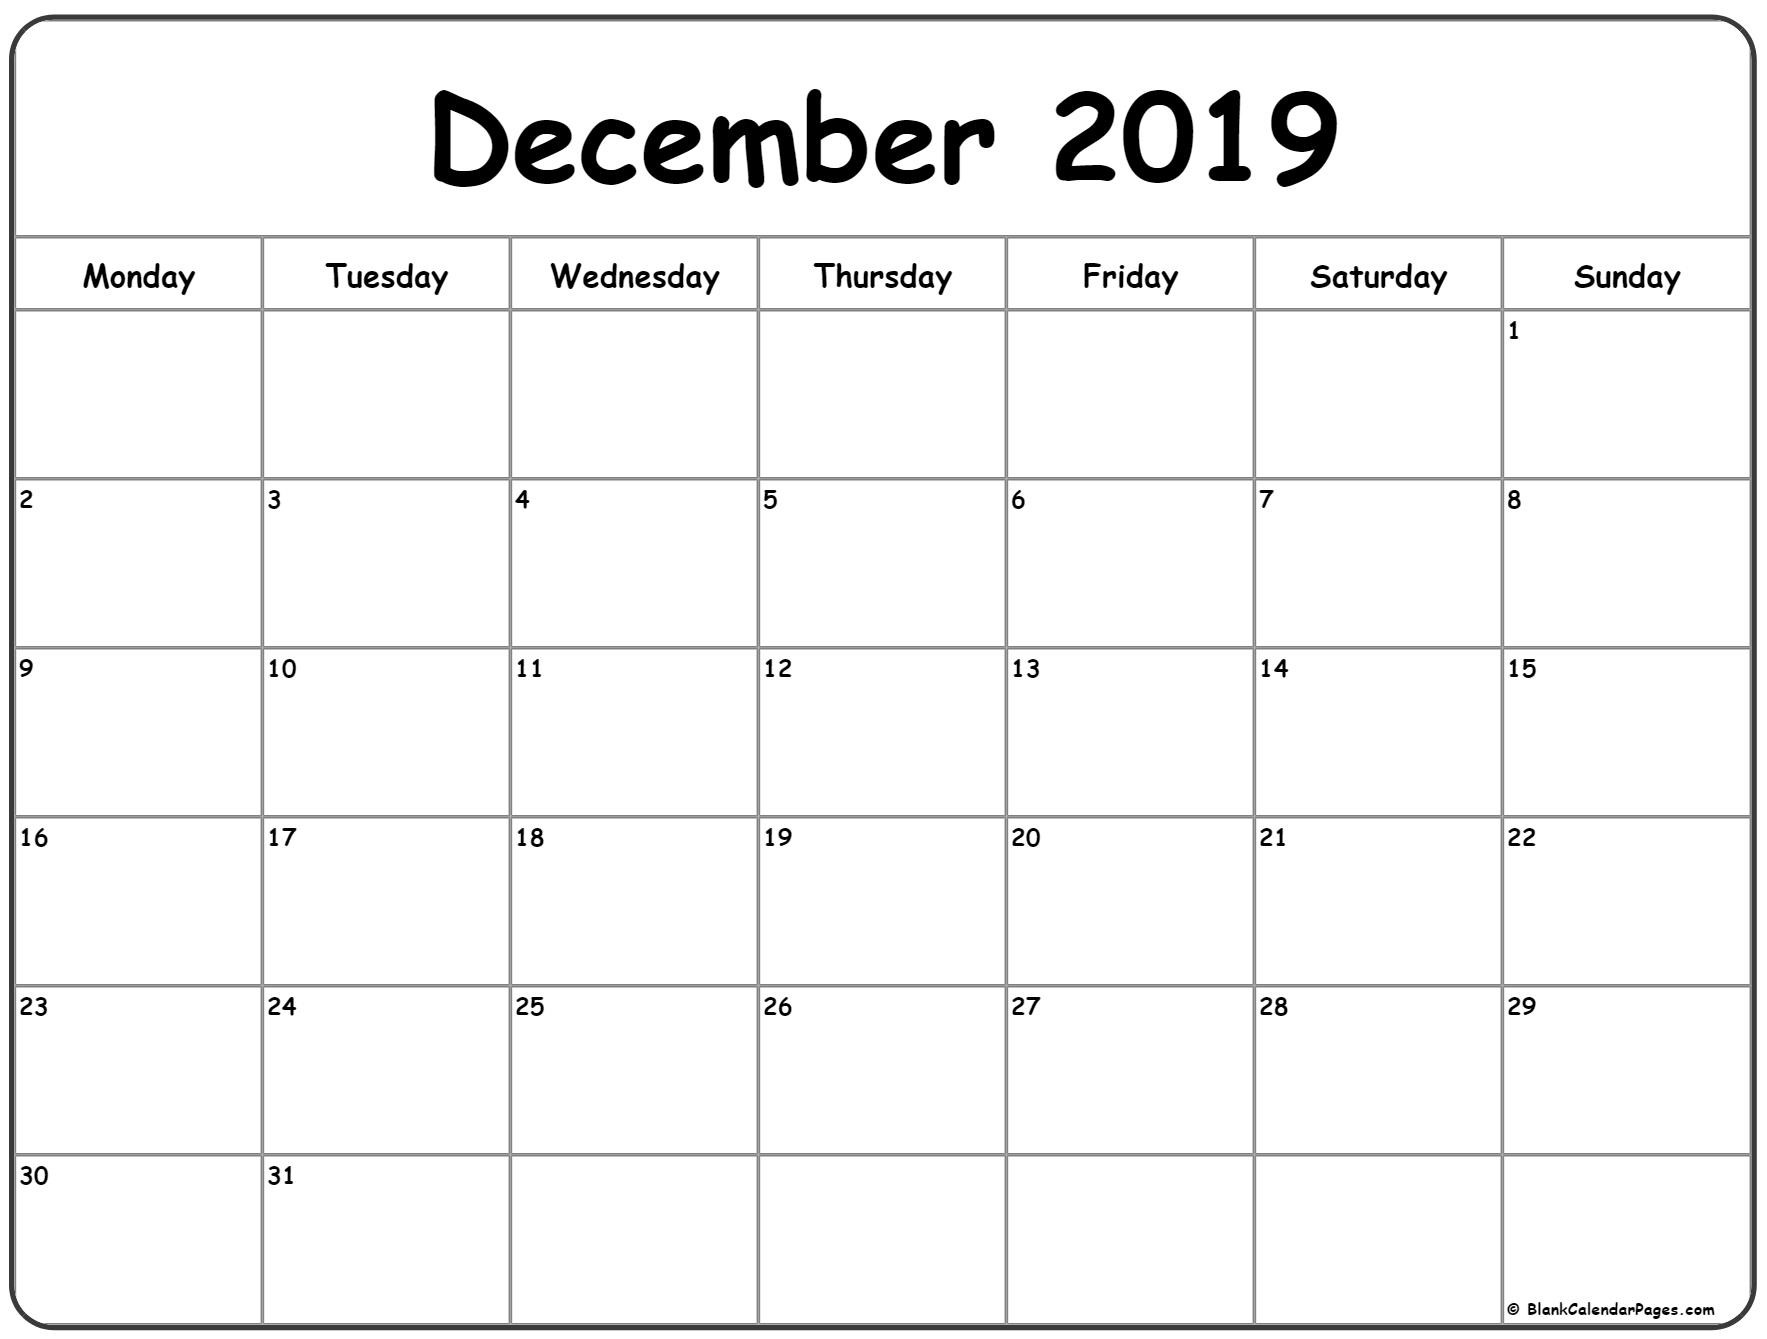 December 2019 Monday Calendar | Monday To Sunday-Monday Start Calendar Template